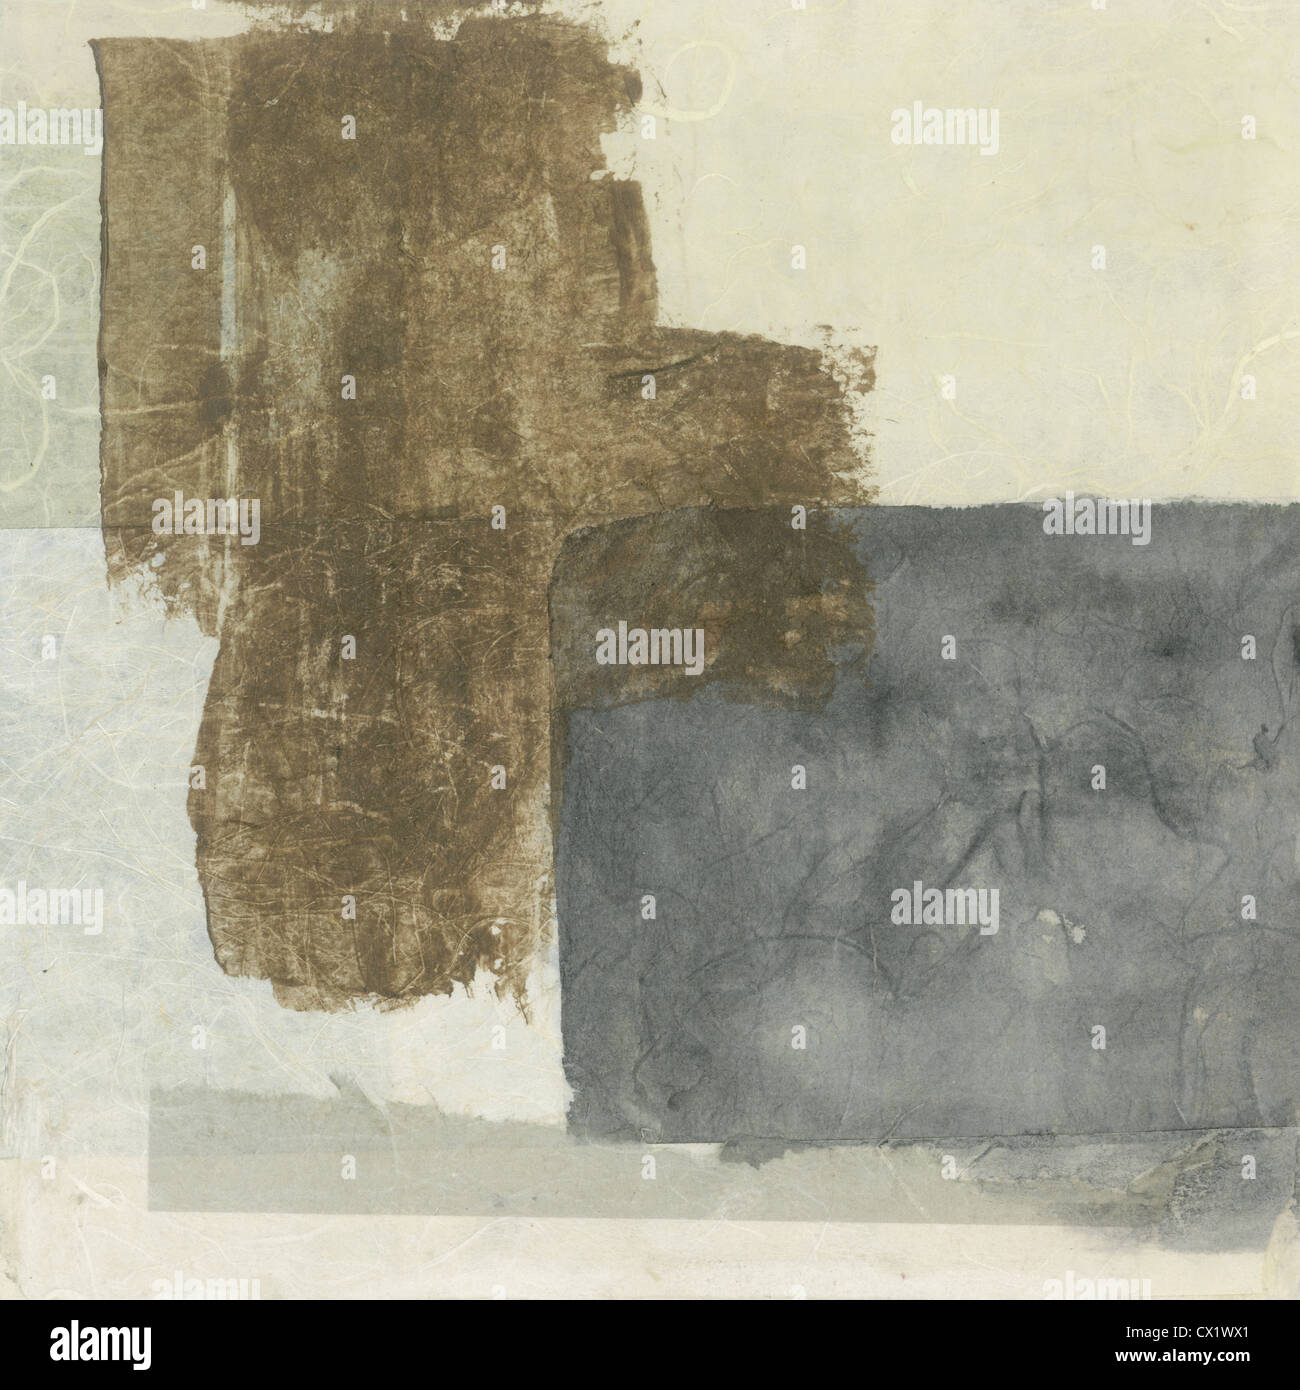 Abstract gray et marron peinture collage papier de texture. Photo Stock